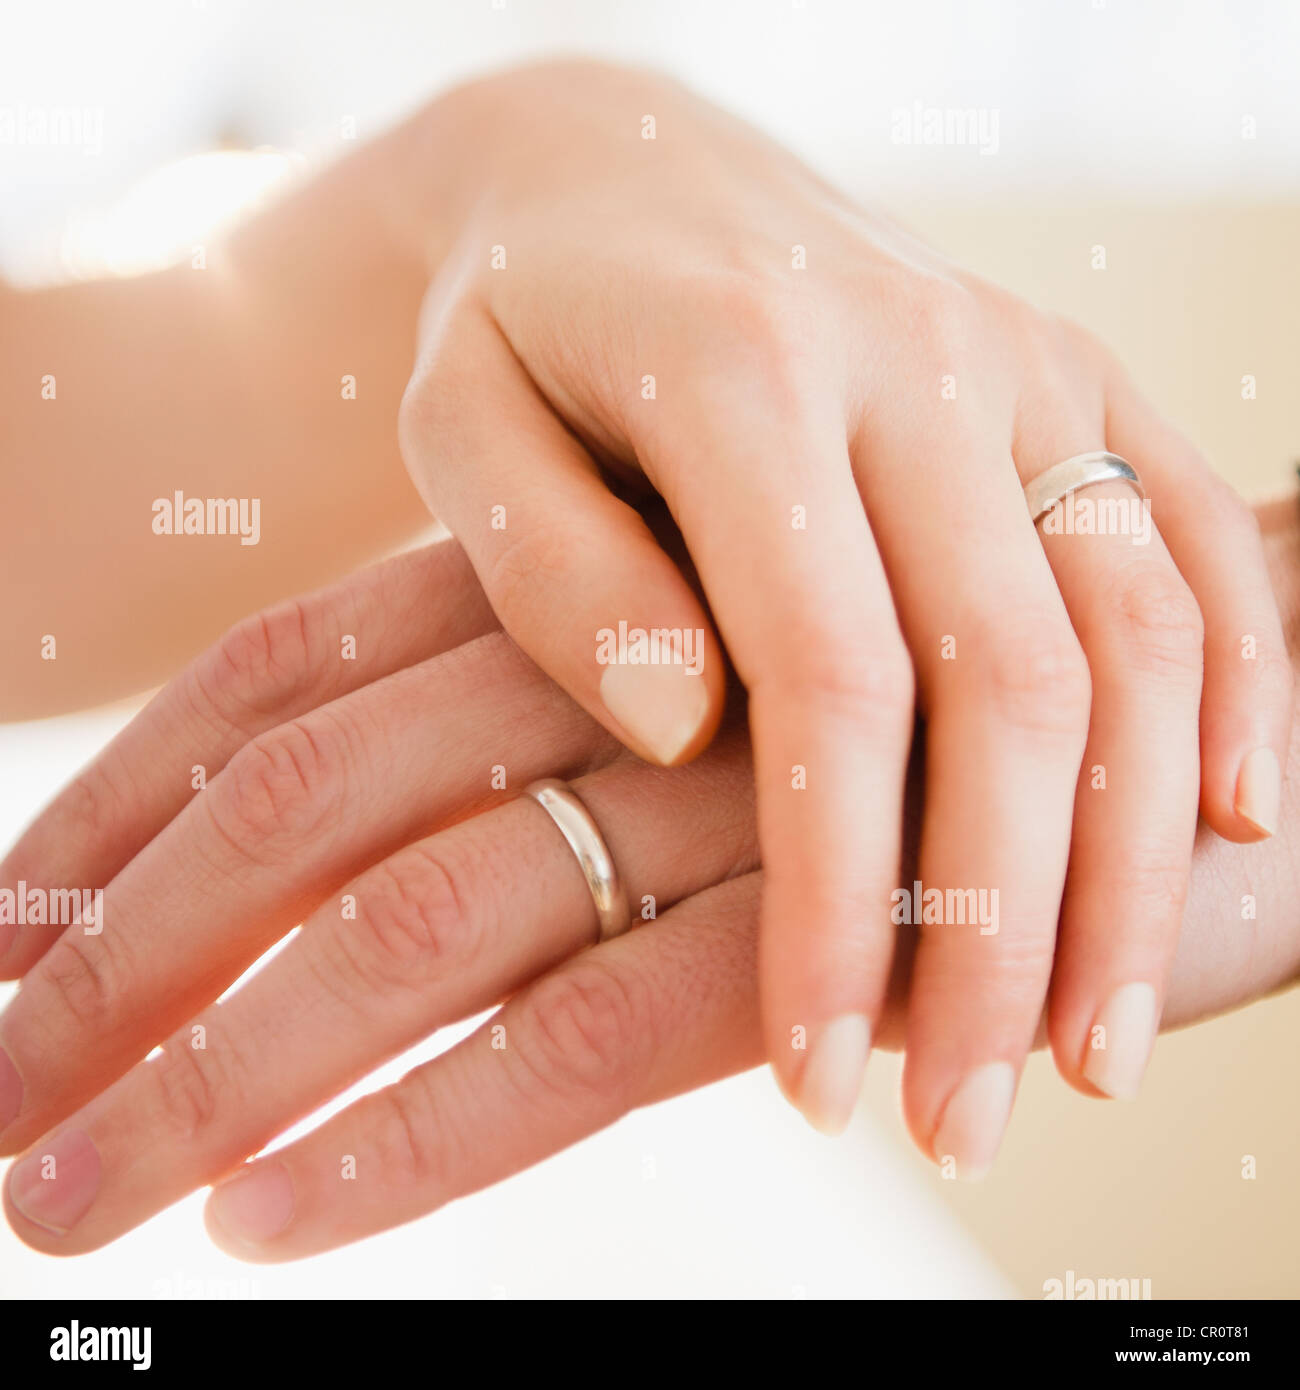 USA, New Jersey, Jersey City, Close up of man's and woman's hands with wedding ring - Stock Image